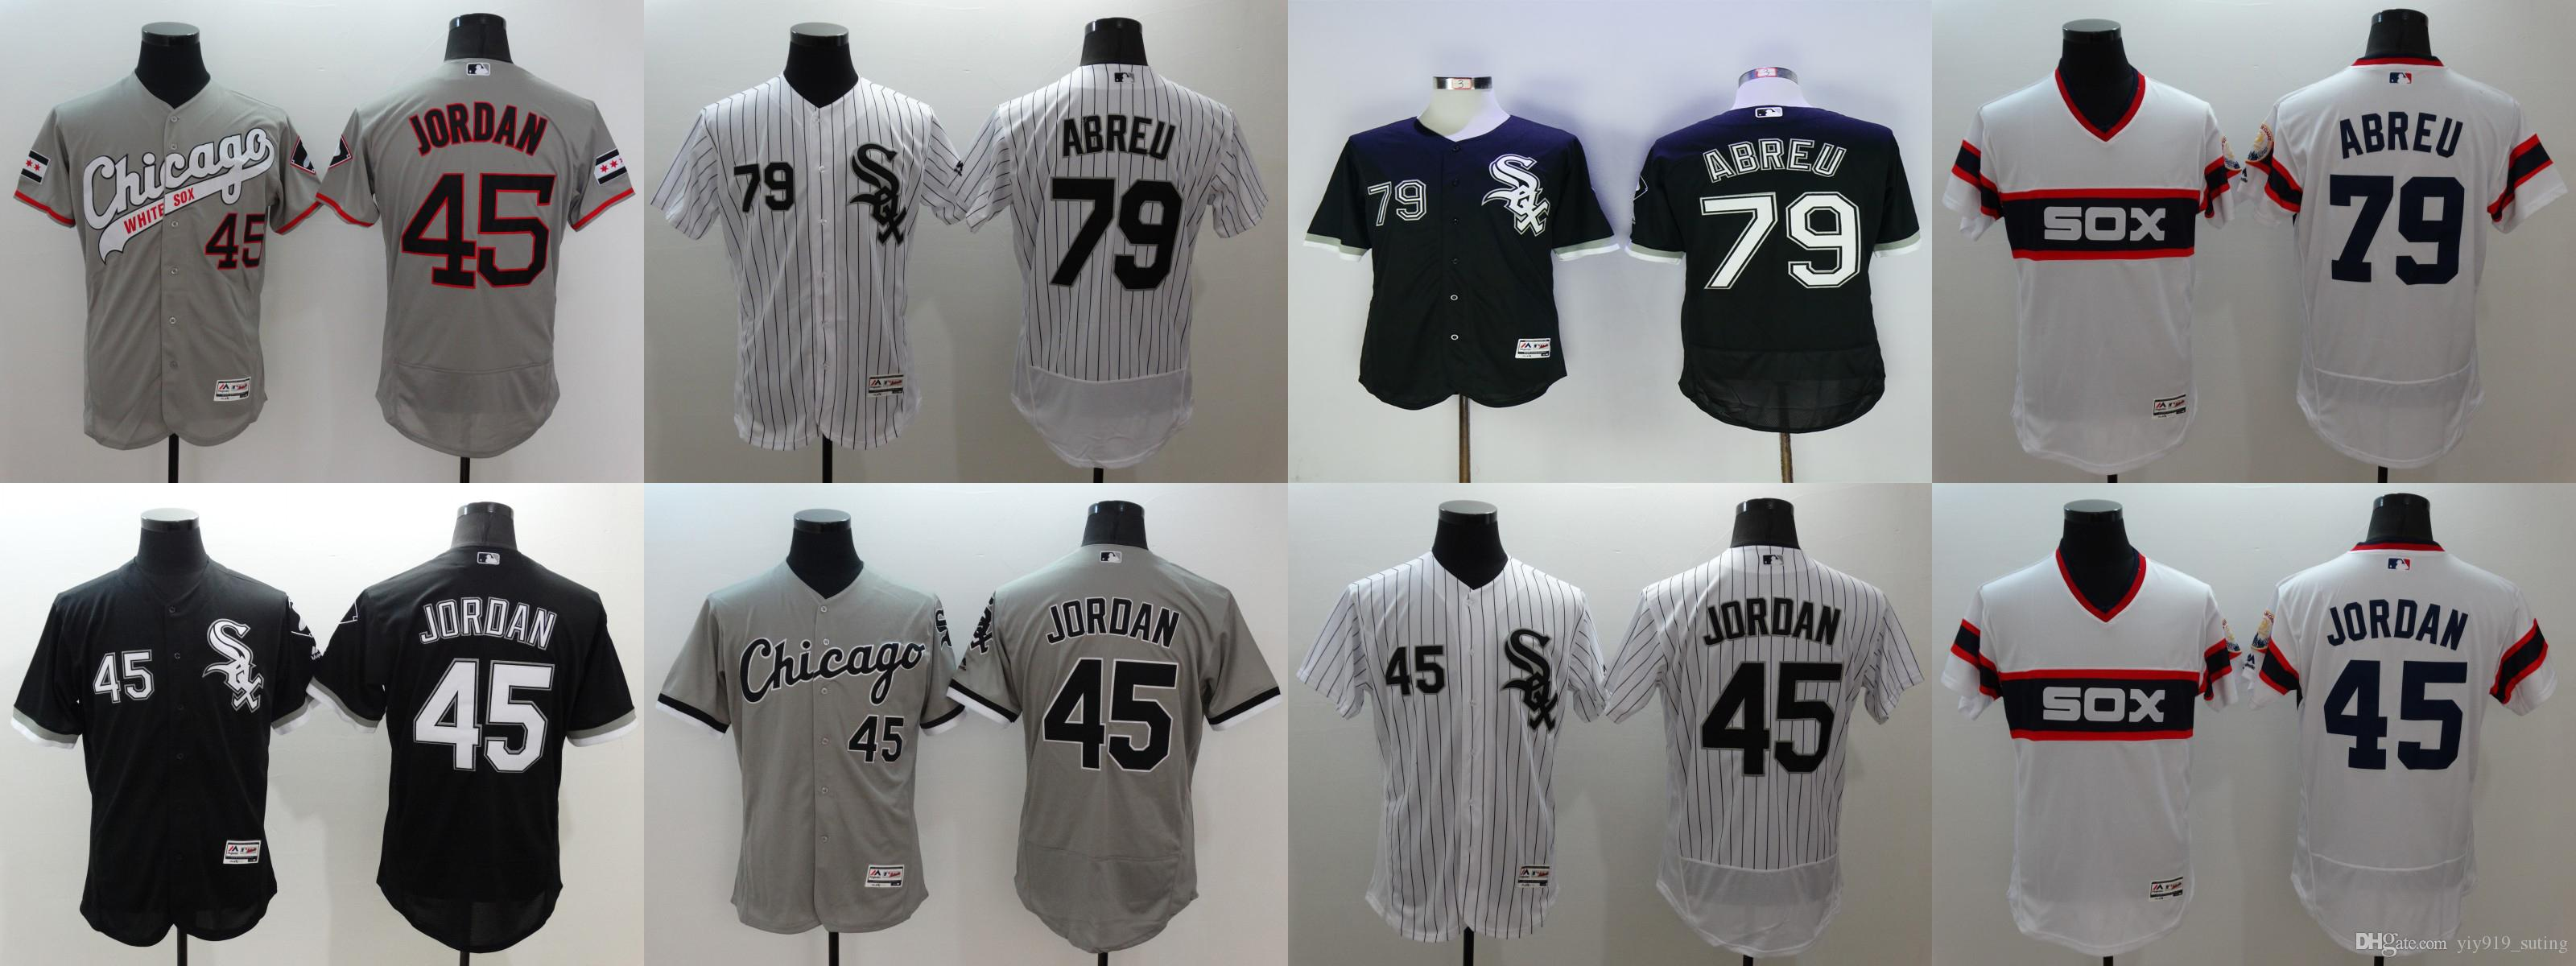 c97a7e89a9b ... denmark 2017 chicago white sox jersey mens 45 michael jordan 79 jose  abreu flexbase collection baseball ...